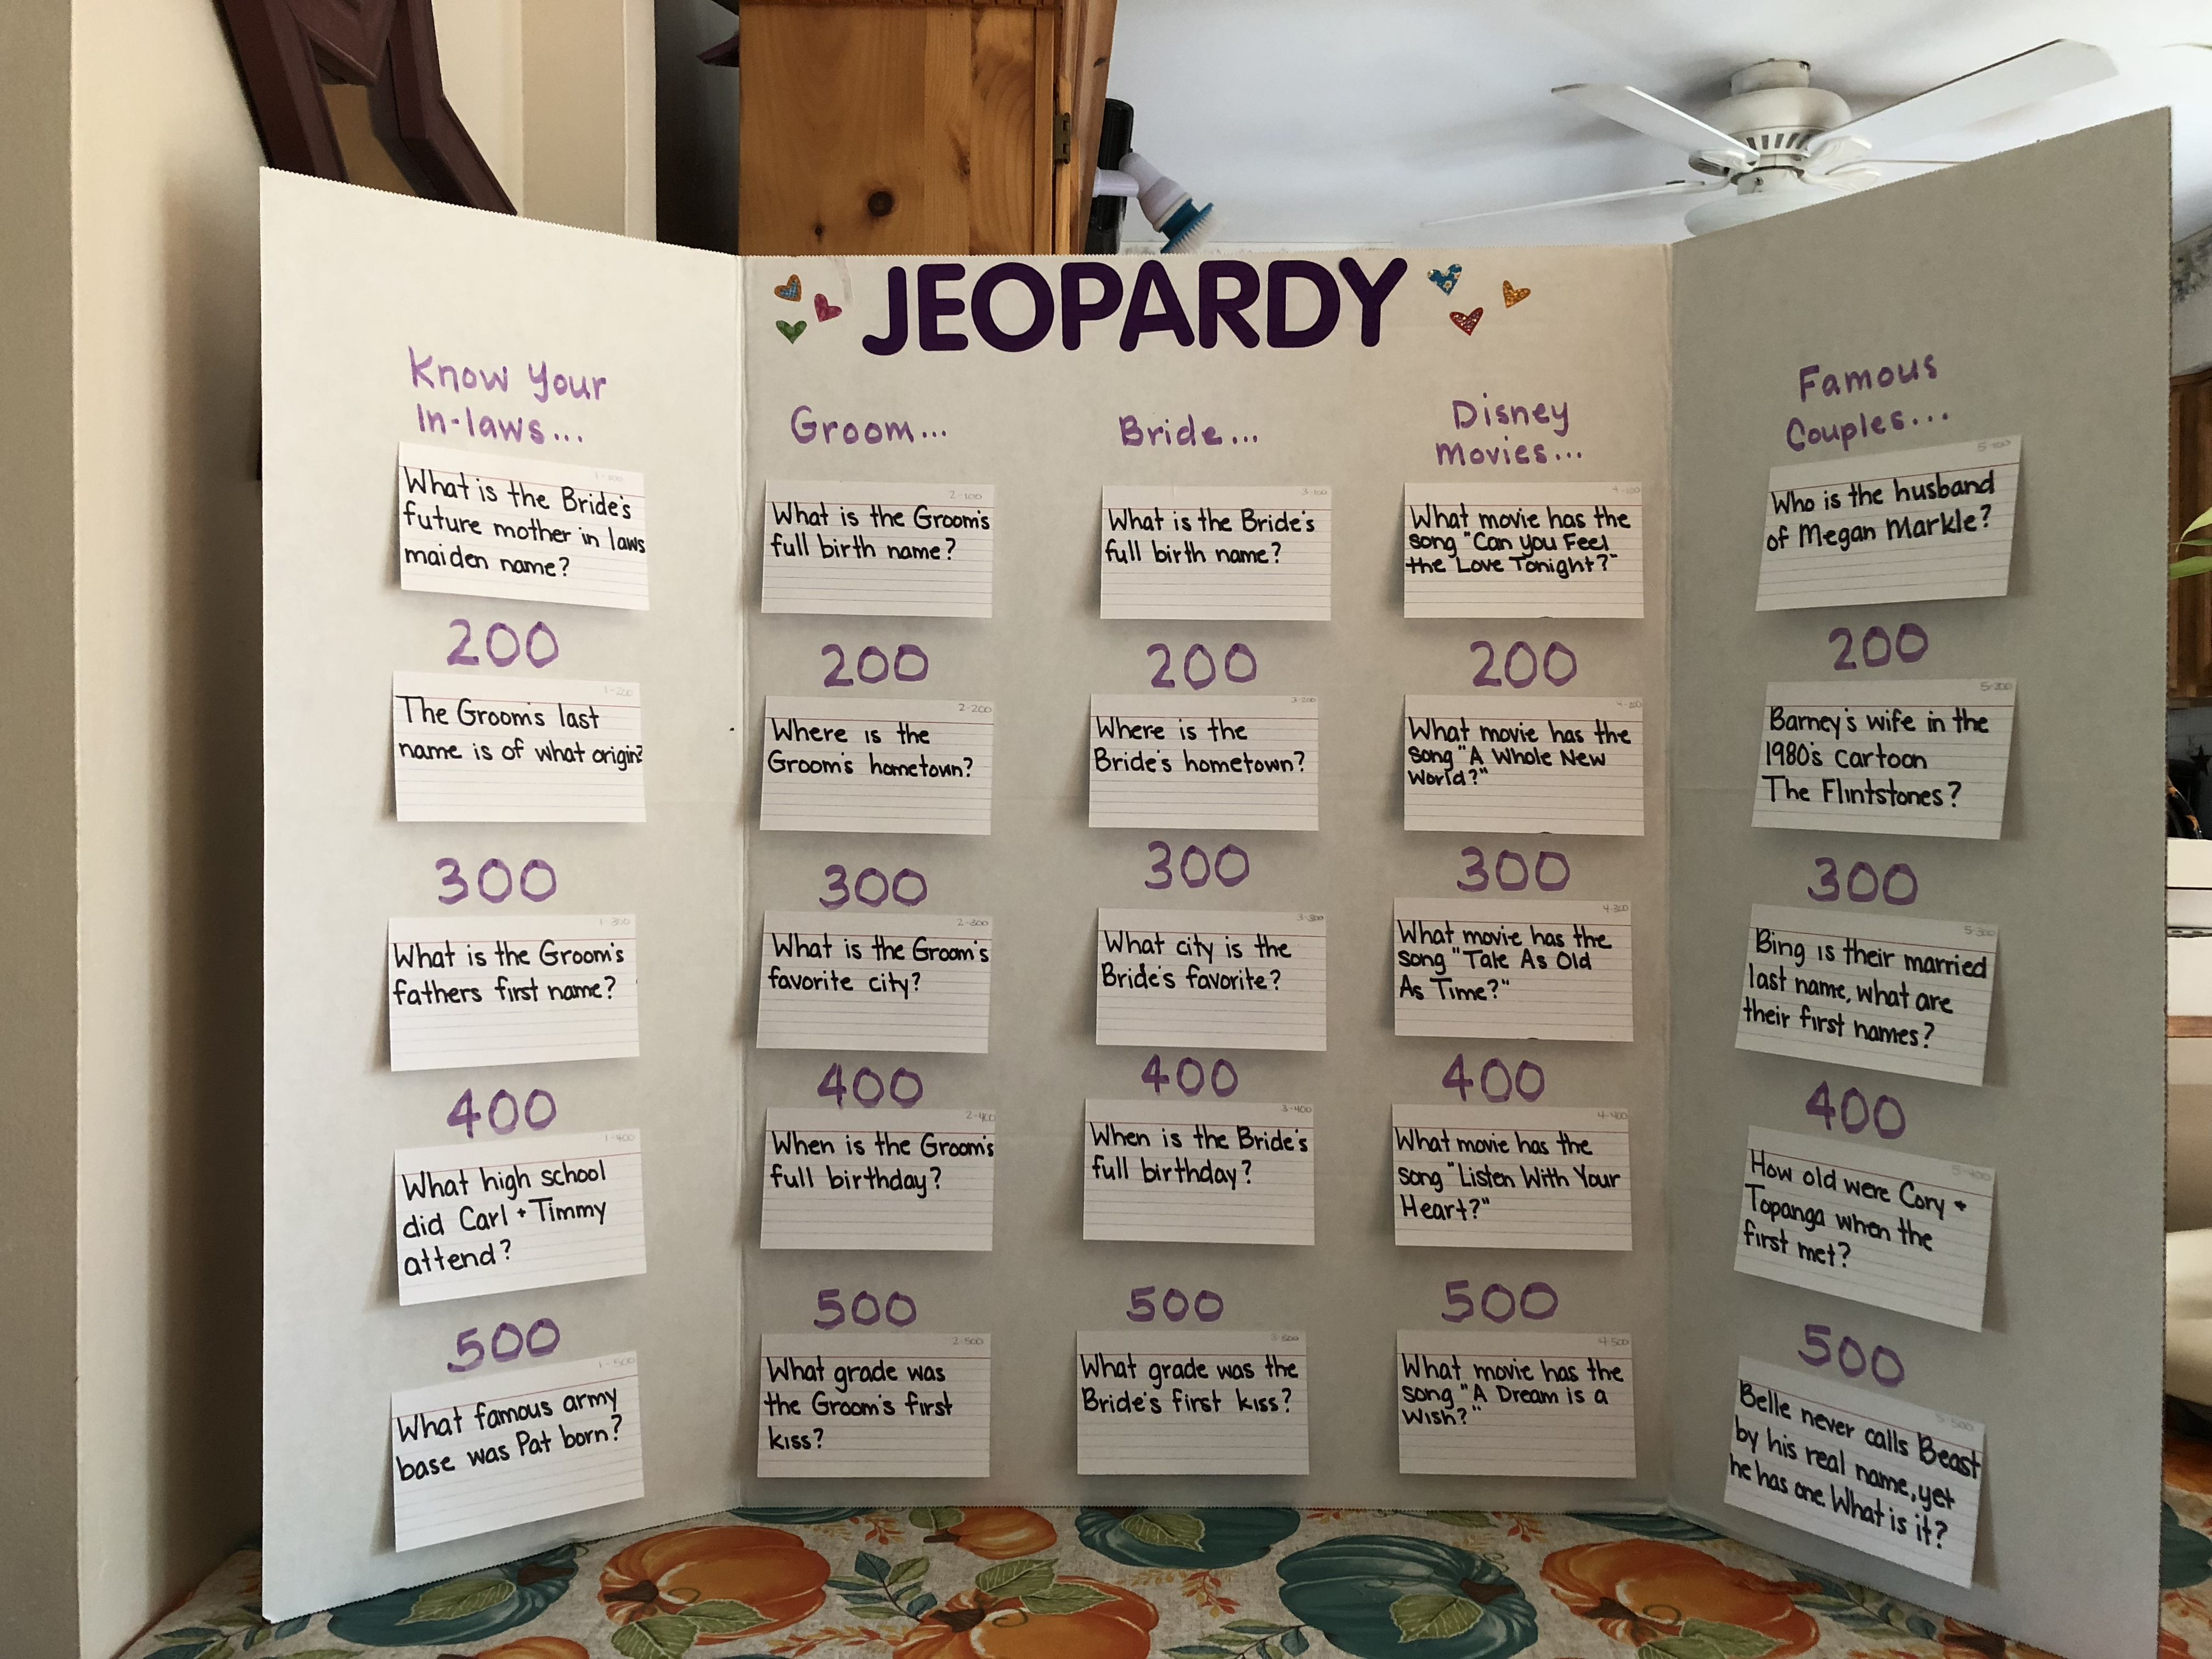 Bridal Jeopardy Couples Bridal Shower Fun Bridal Shower Games